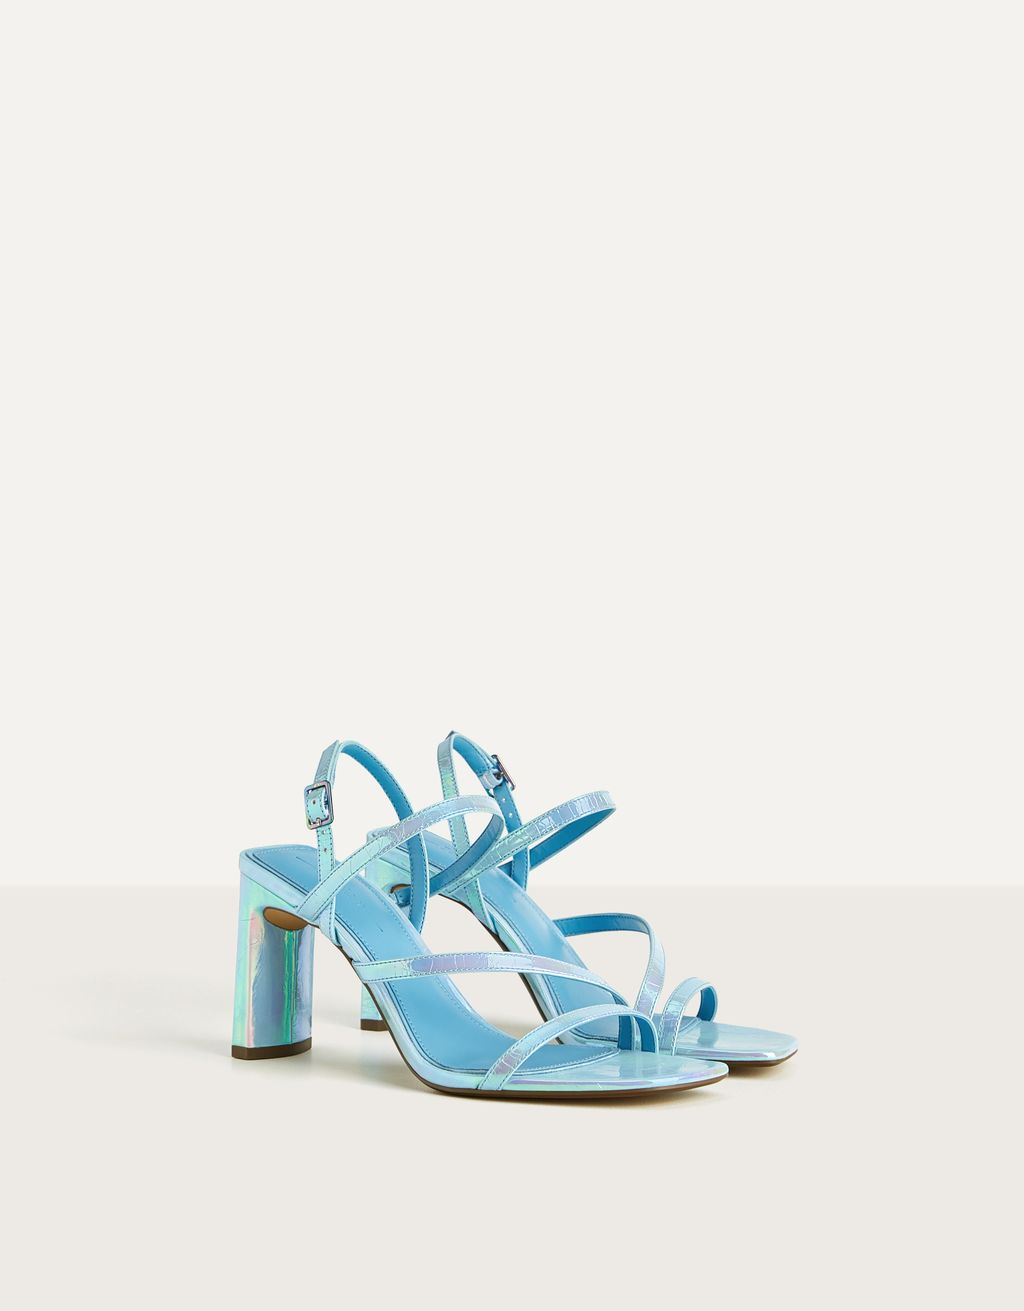 Heeled sandals with iridescent straps